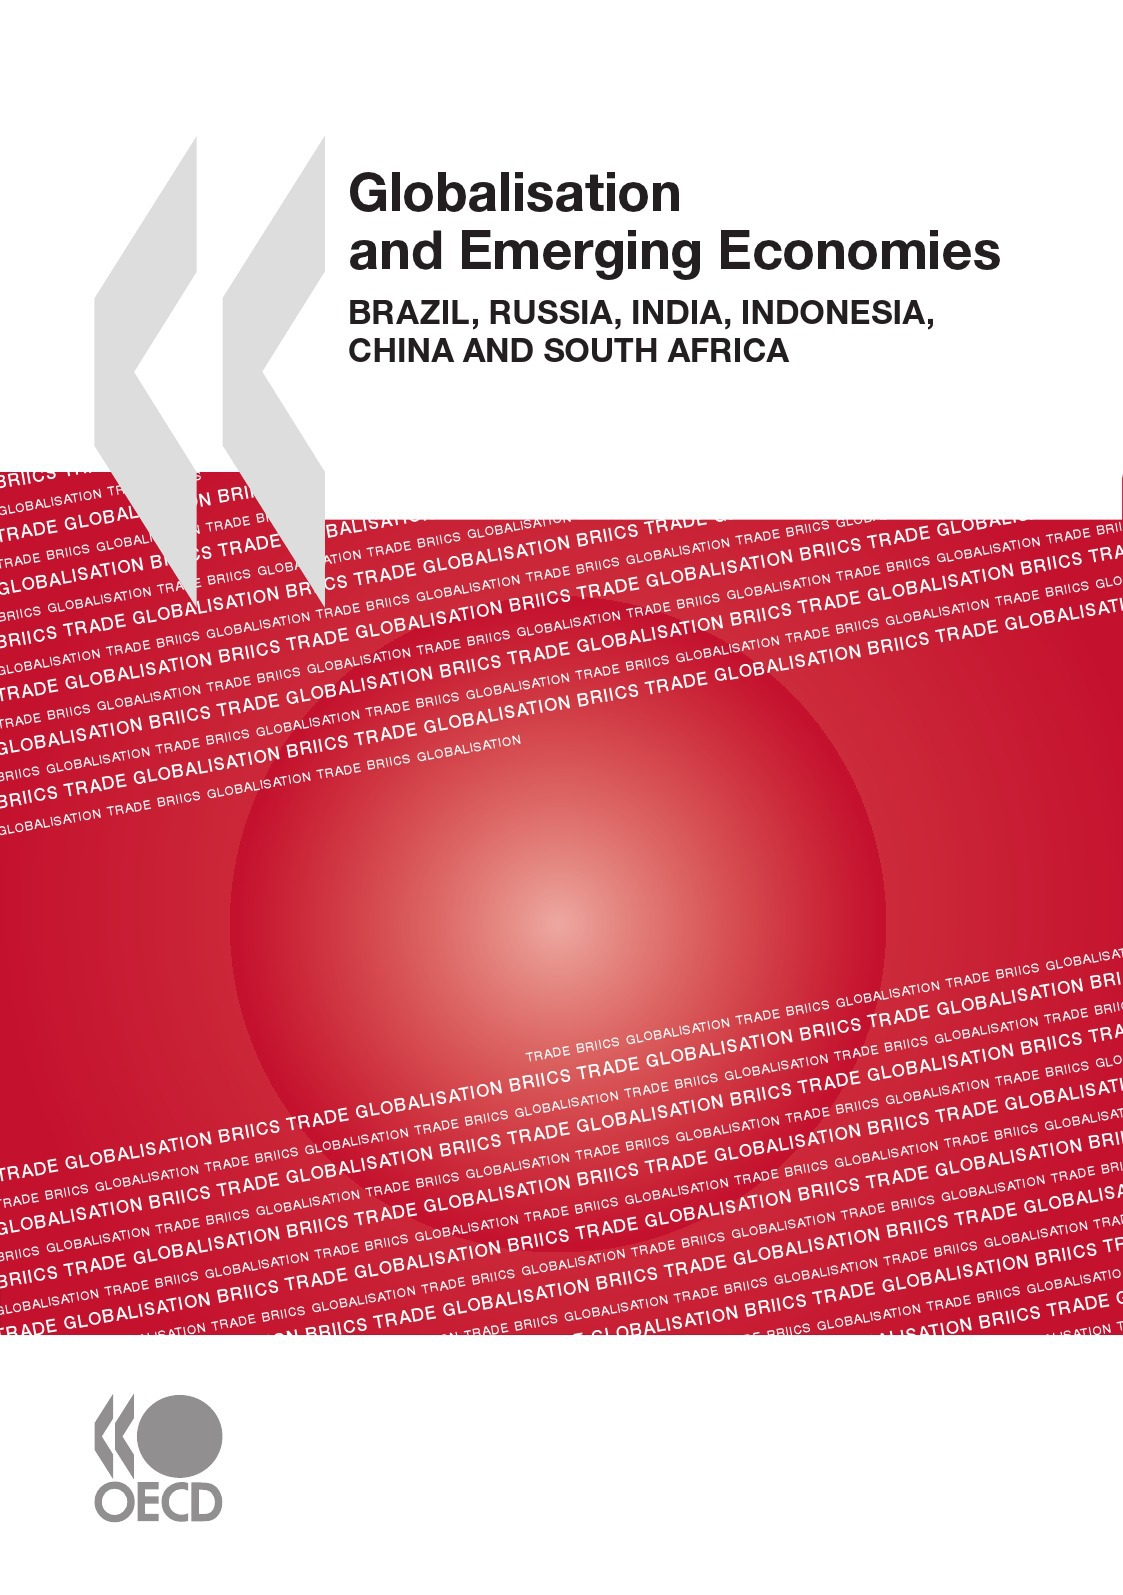 Globalisation and emerging economies ; Brazil, Russia, India, Indonesia, China and South Africa